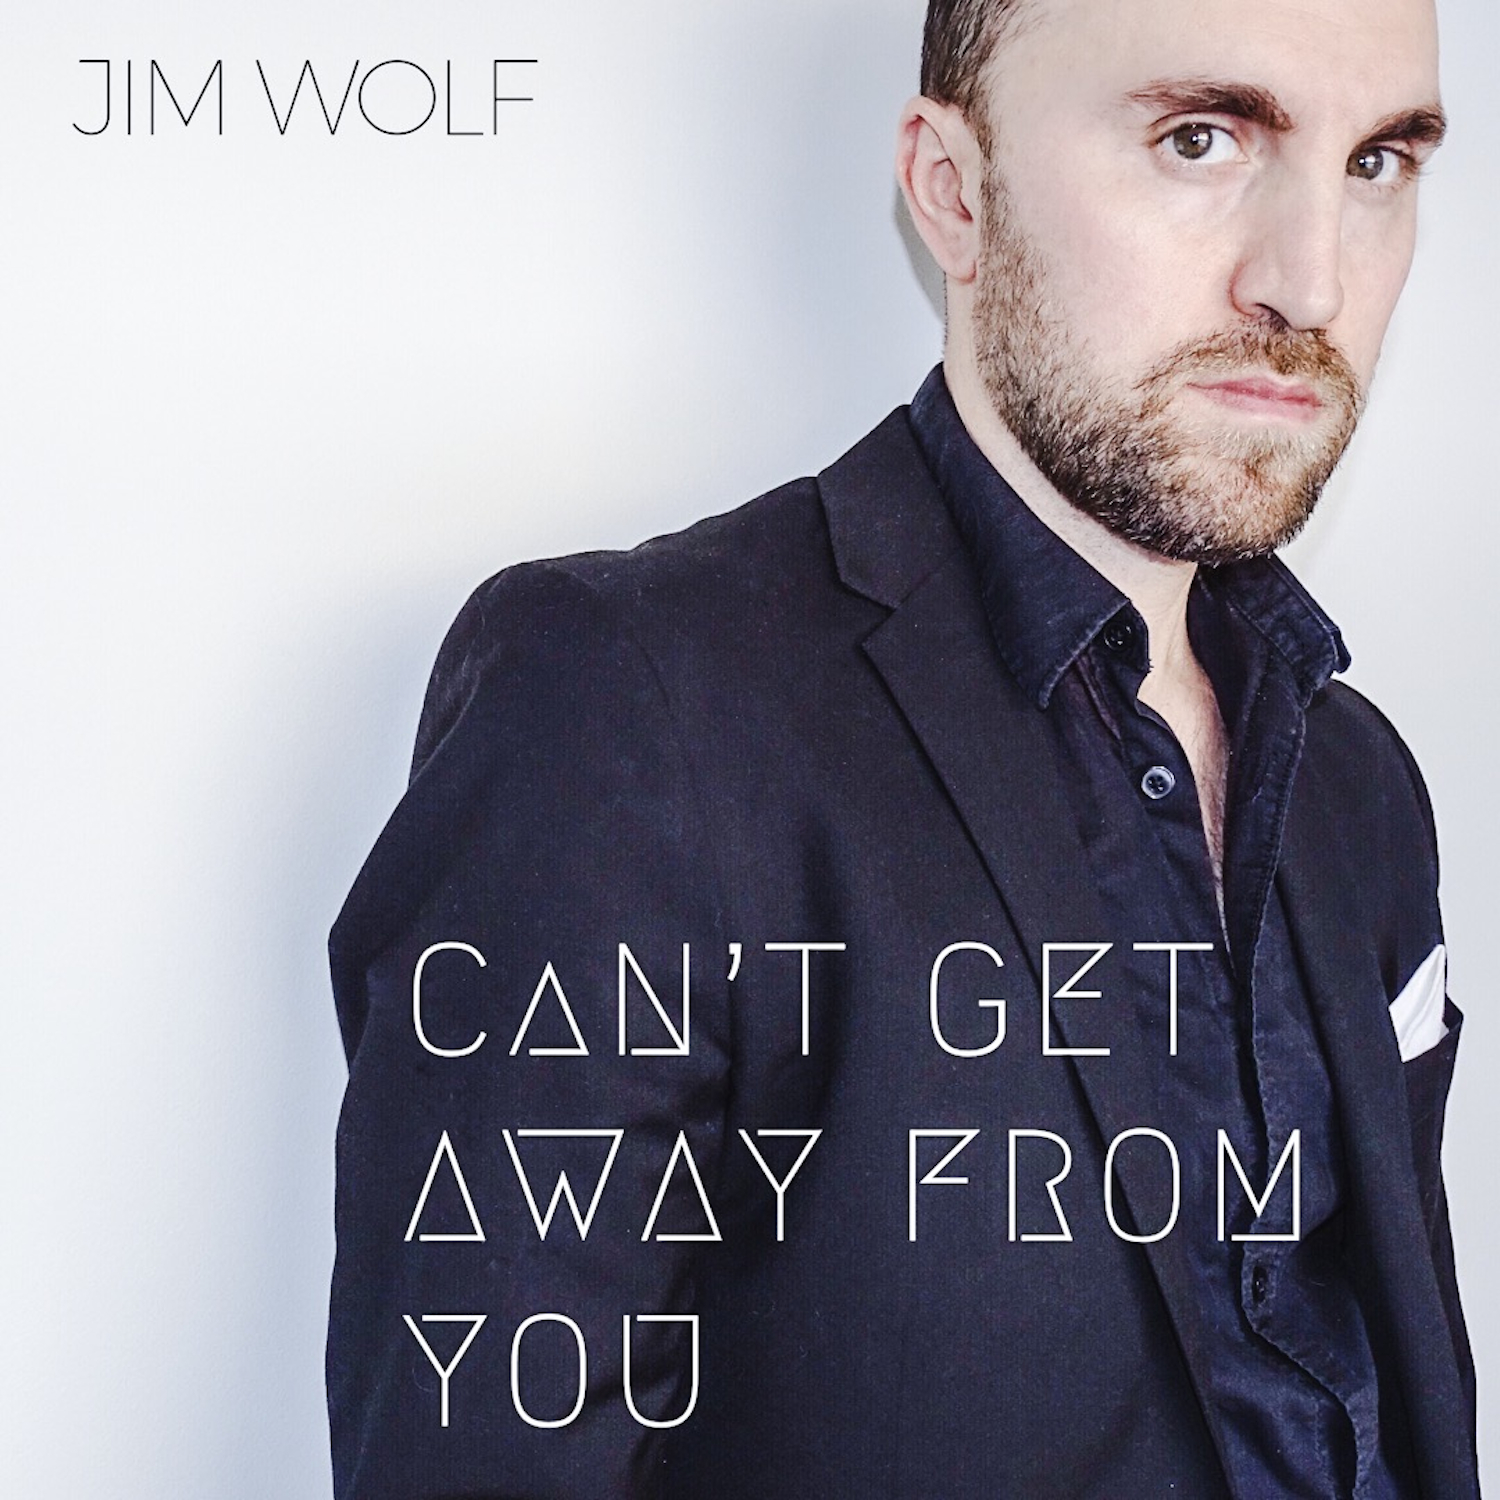 NEW SINGLE 'CAN'T GET AWAY FROM YOU' AVAILABLE IN STORES ON 5/10